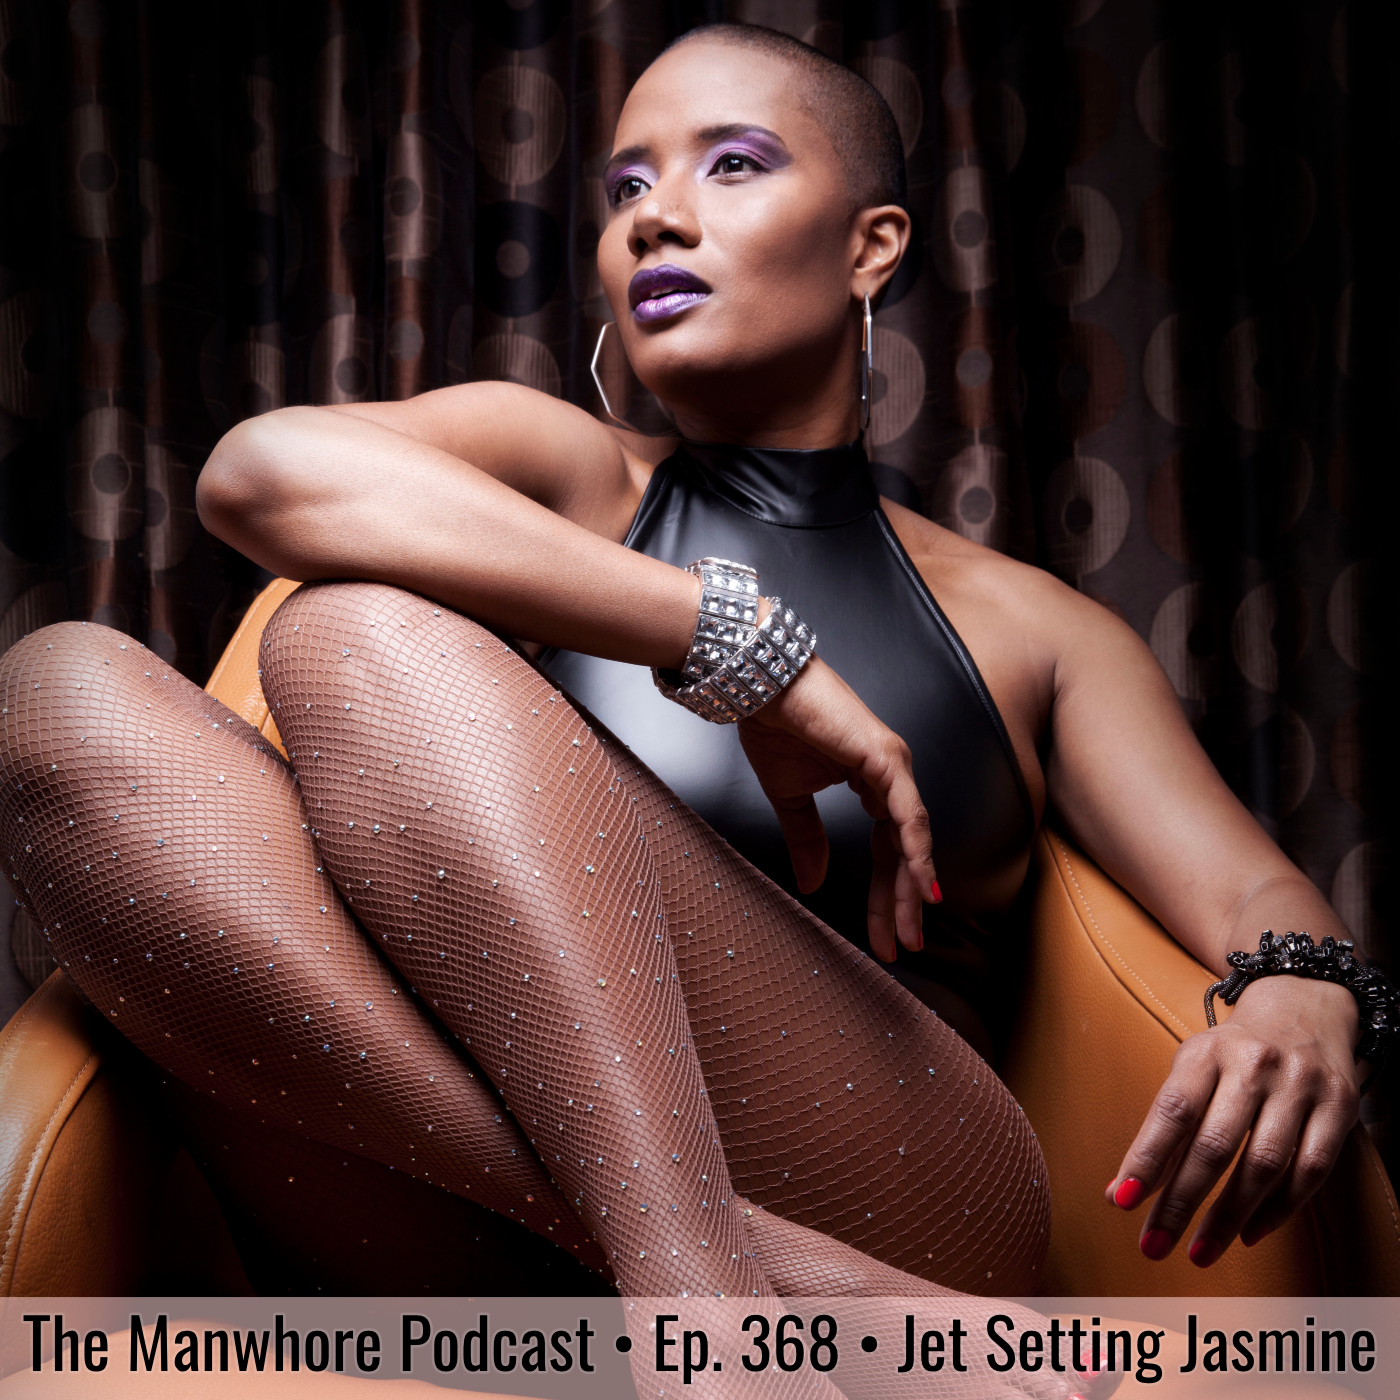 The Manwhore Podcast: A Sex-Positive Quest - Ep. 368: When Your Therapist Does Porn, Too with Jet Setting Jasmine